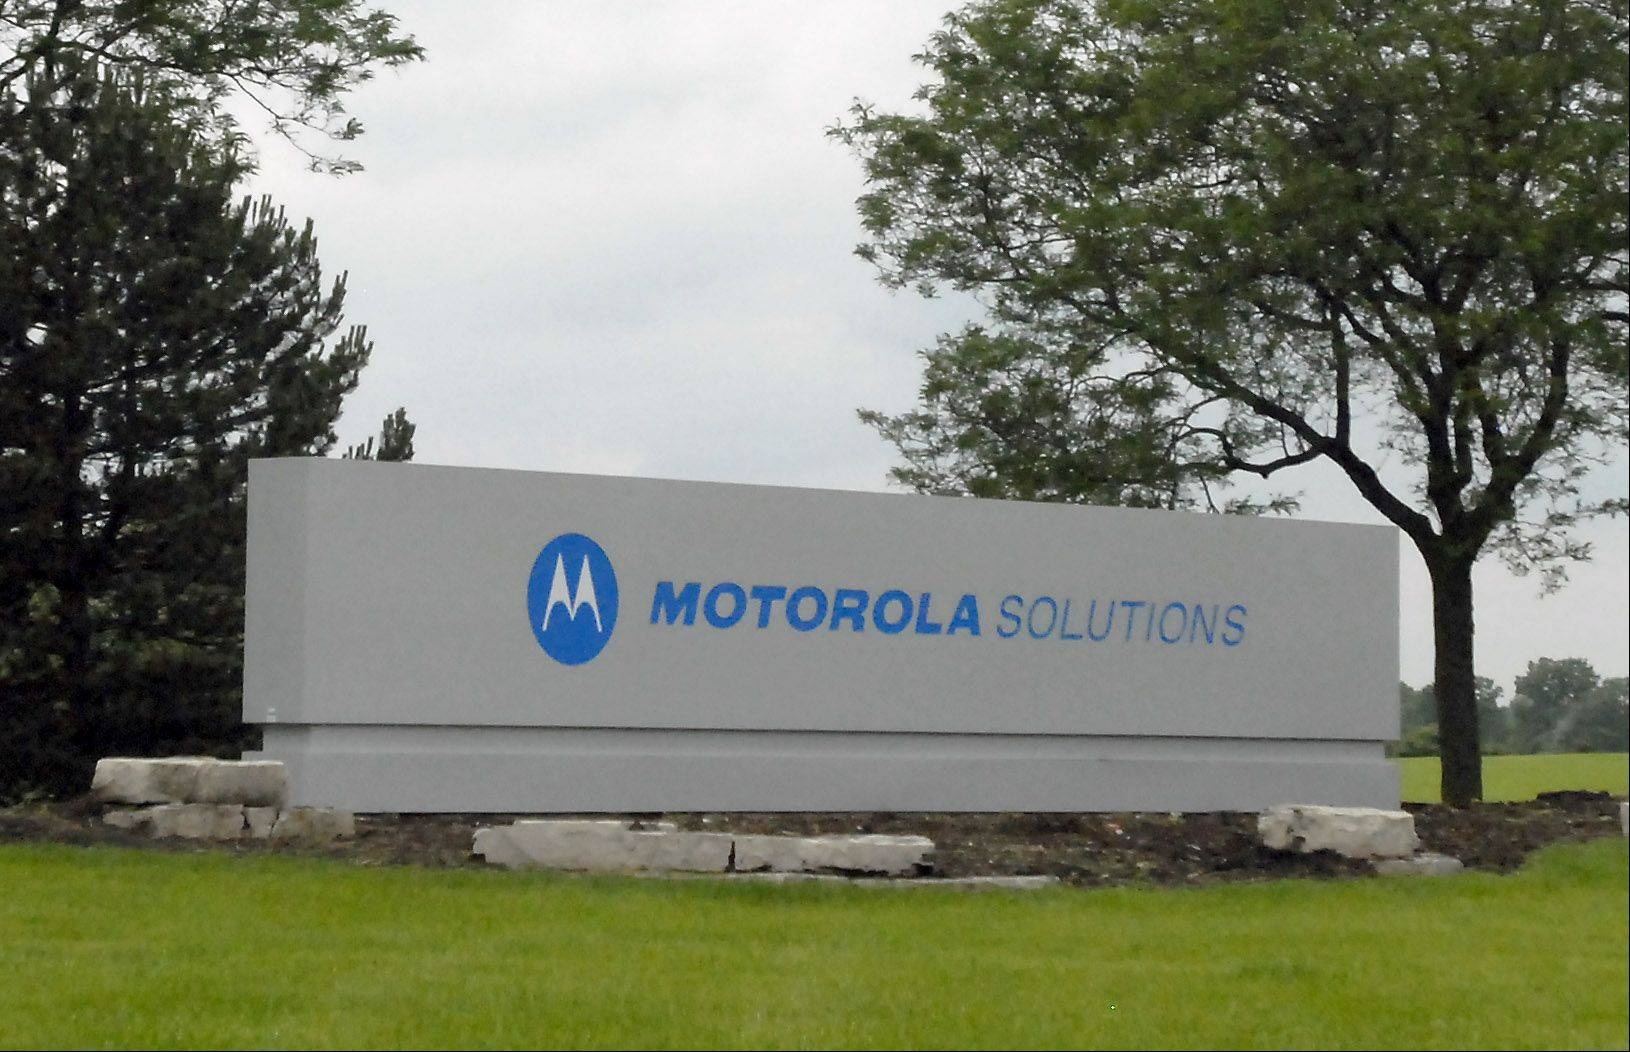 Motorola Solutions headquarters in Schaumburg.